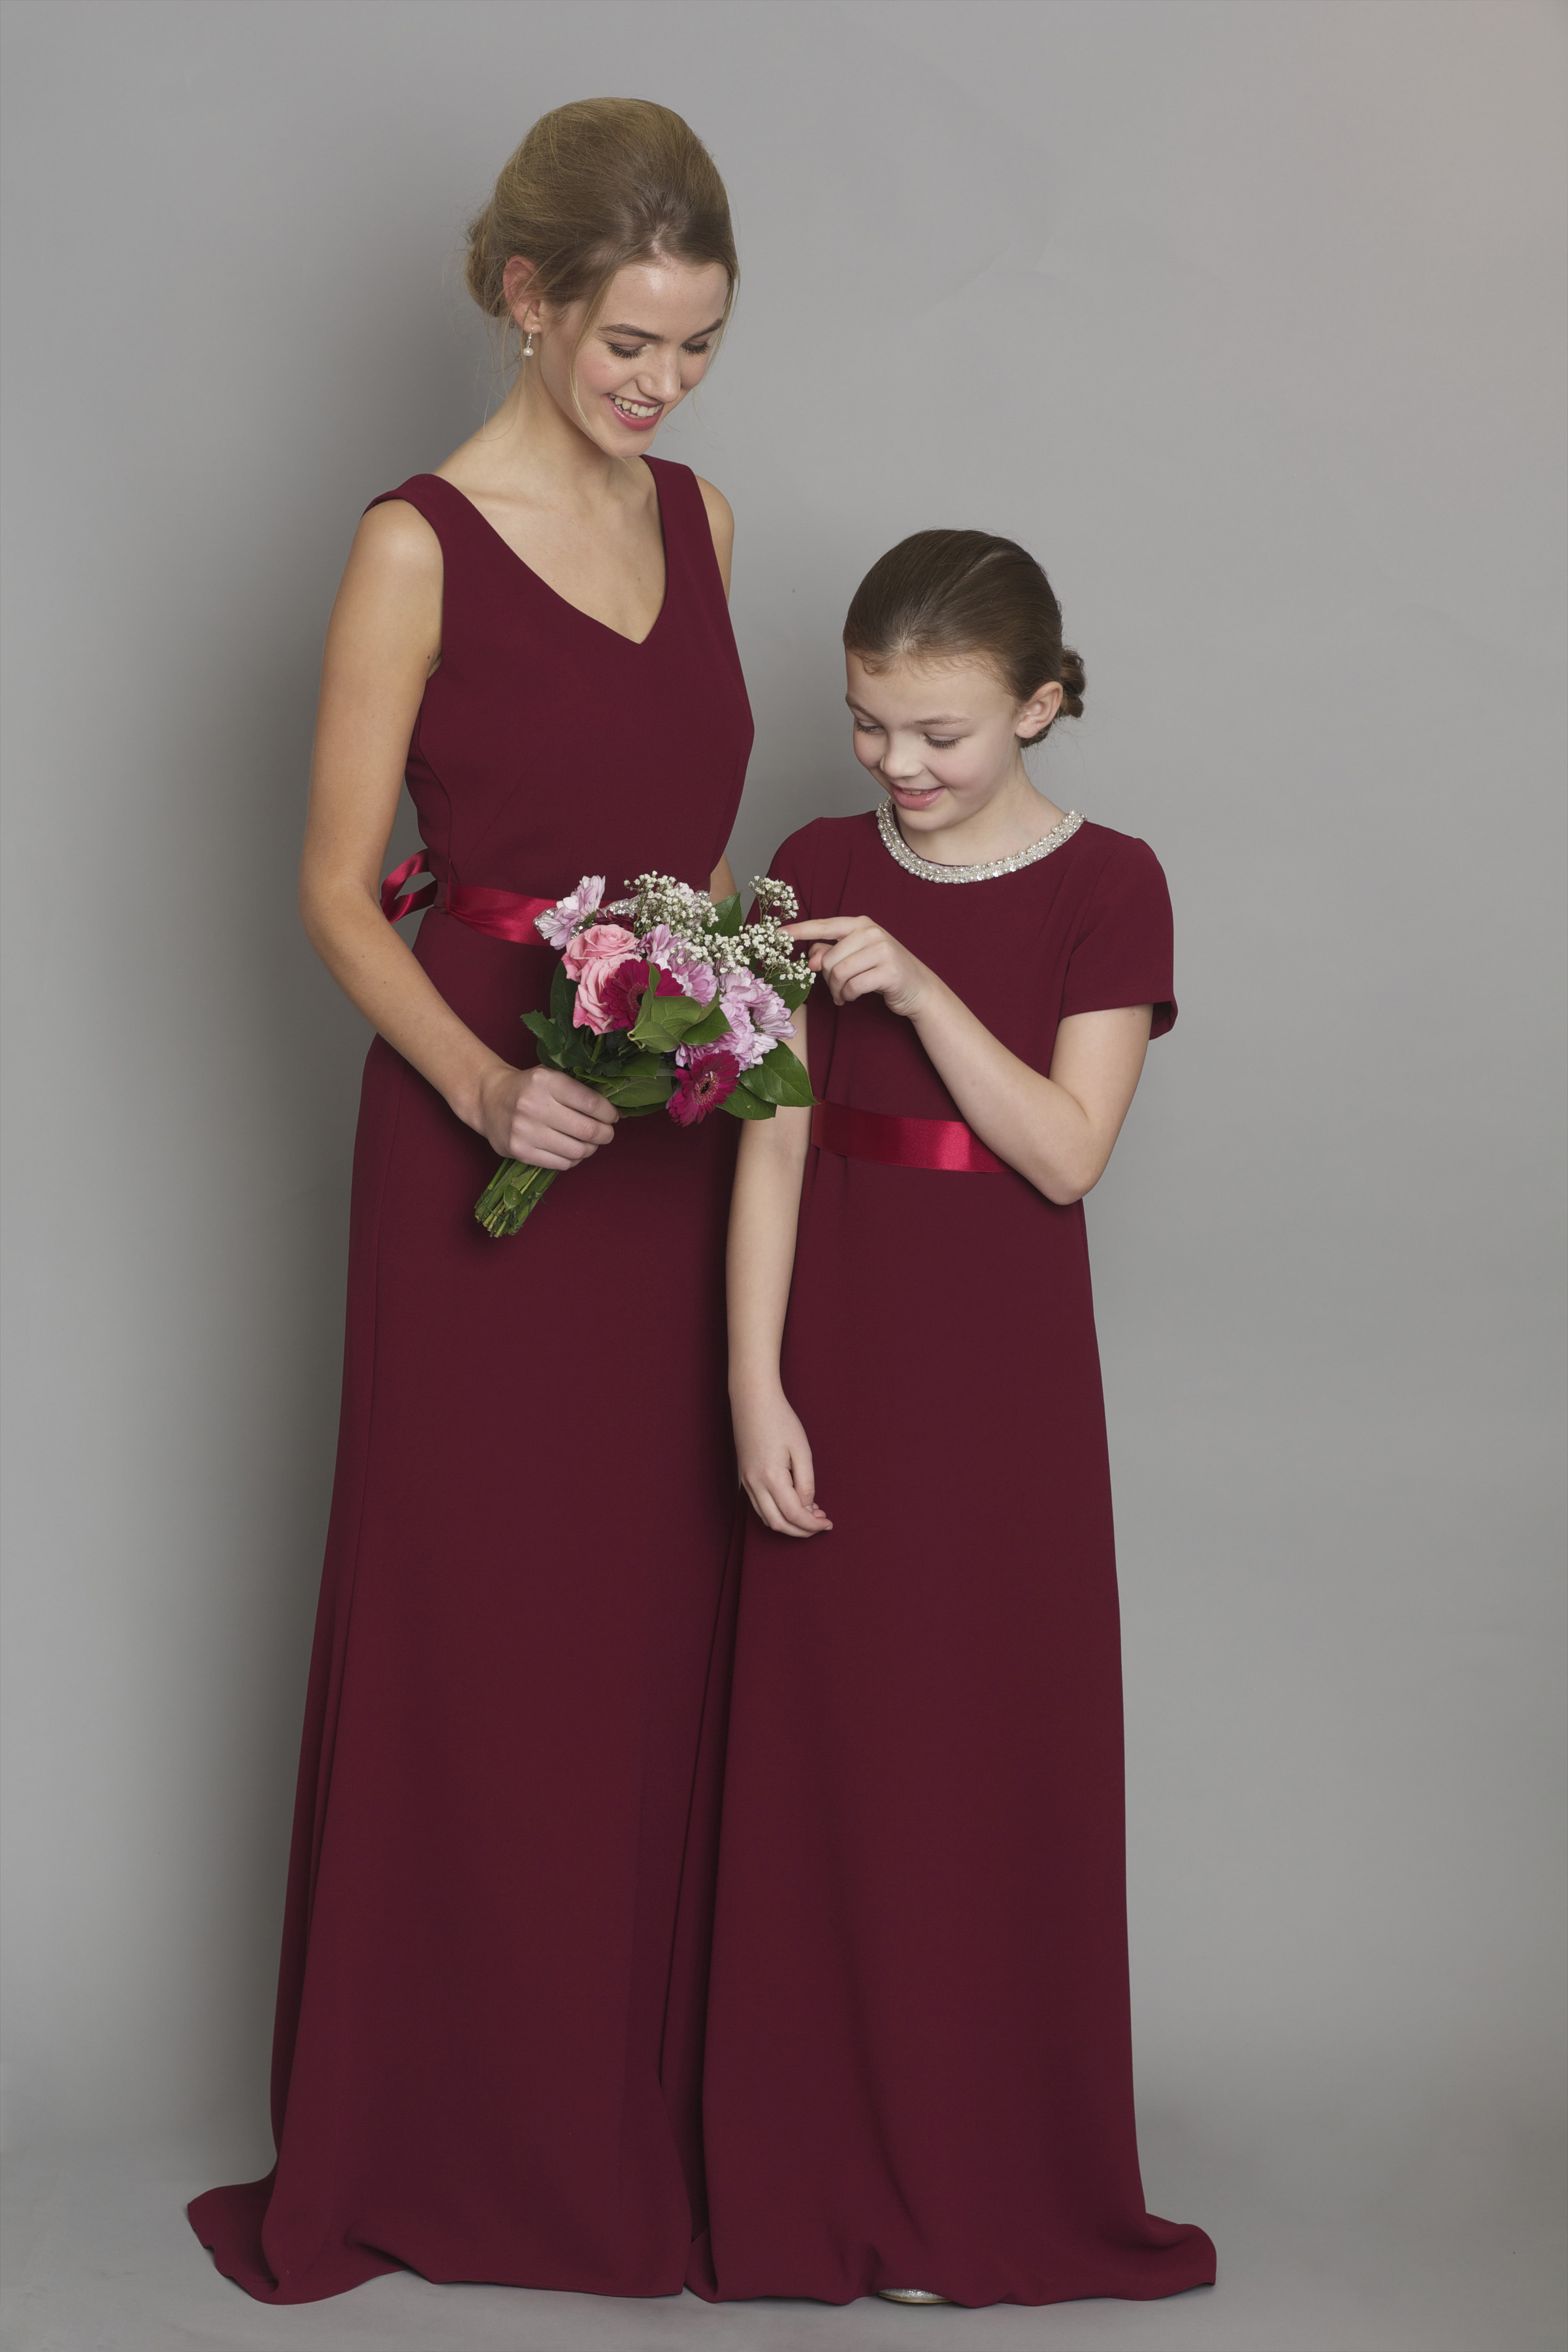 Mulberry DC1179 | Bridesmaid Evening & Debs Dresses from Dresscode